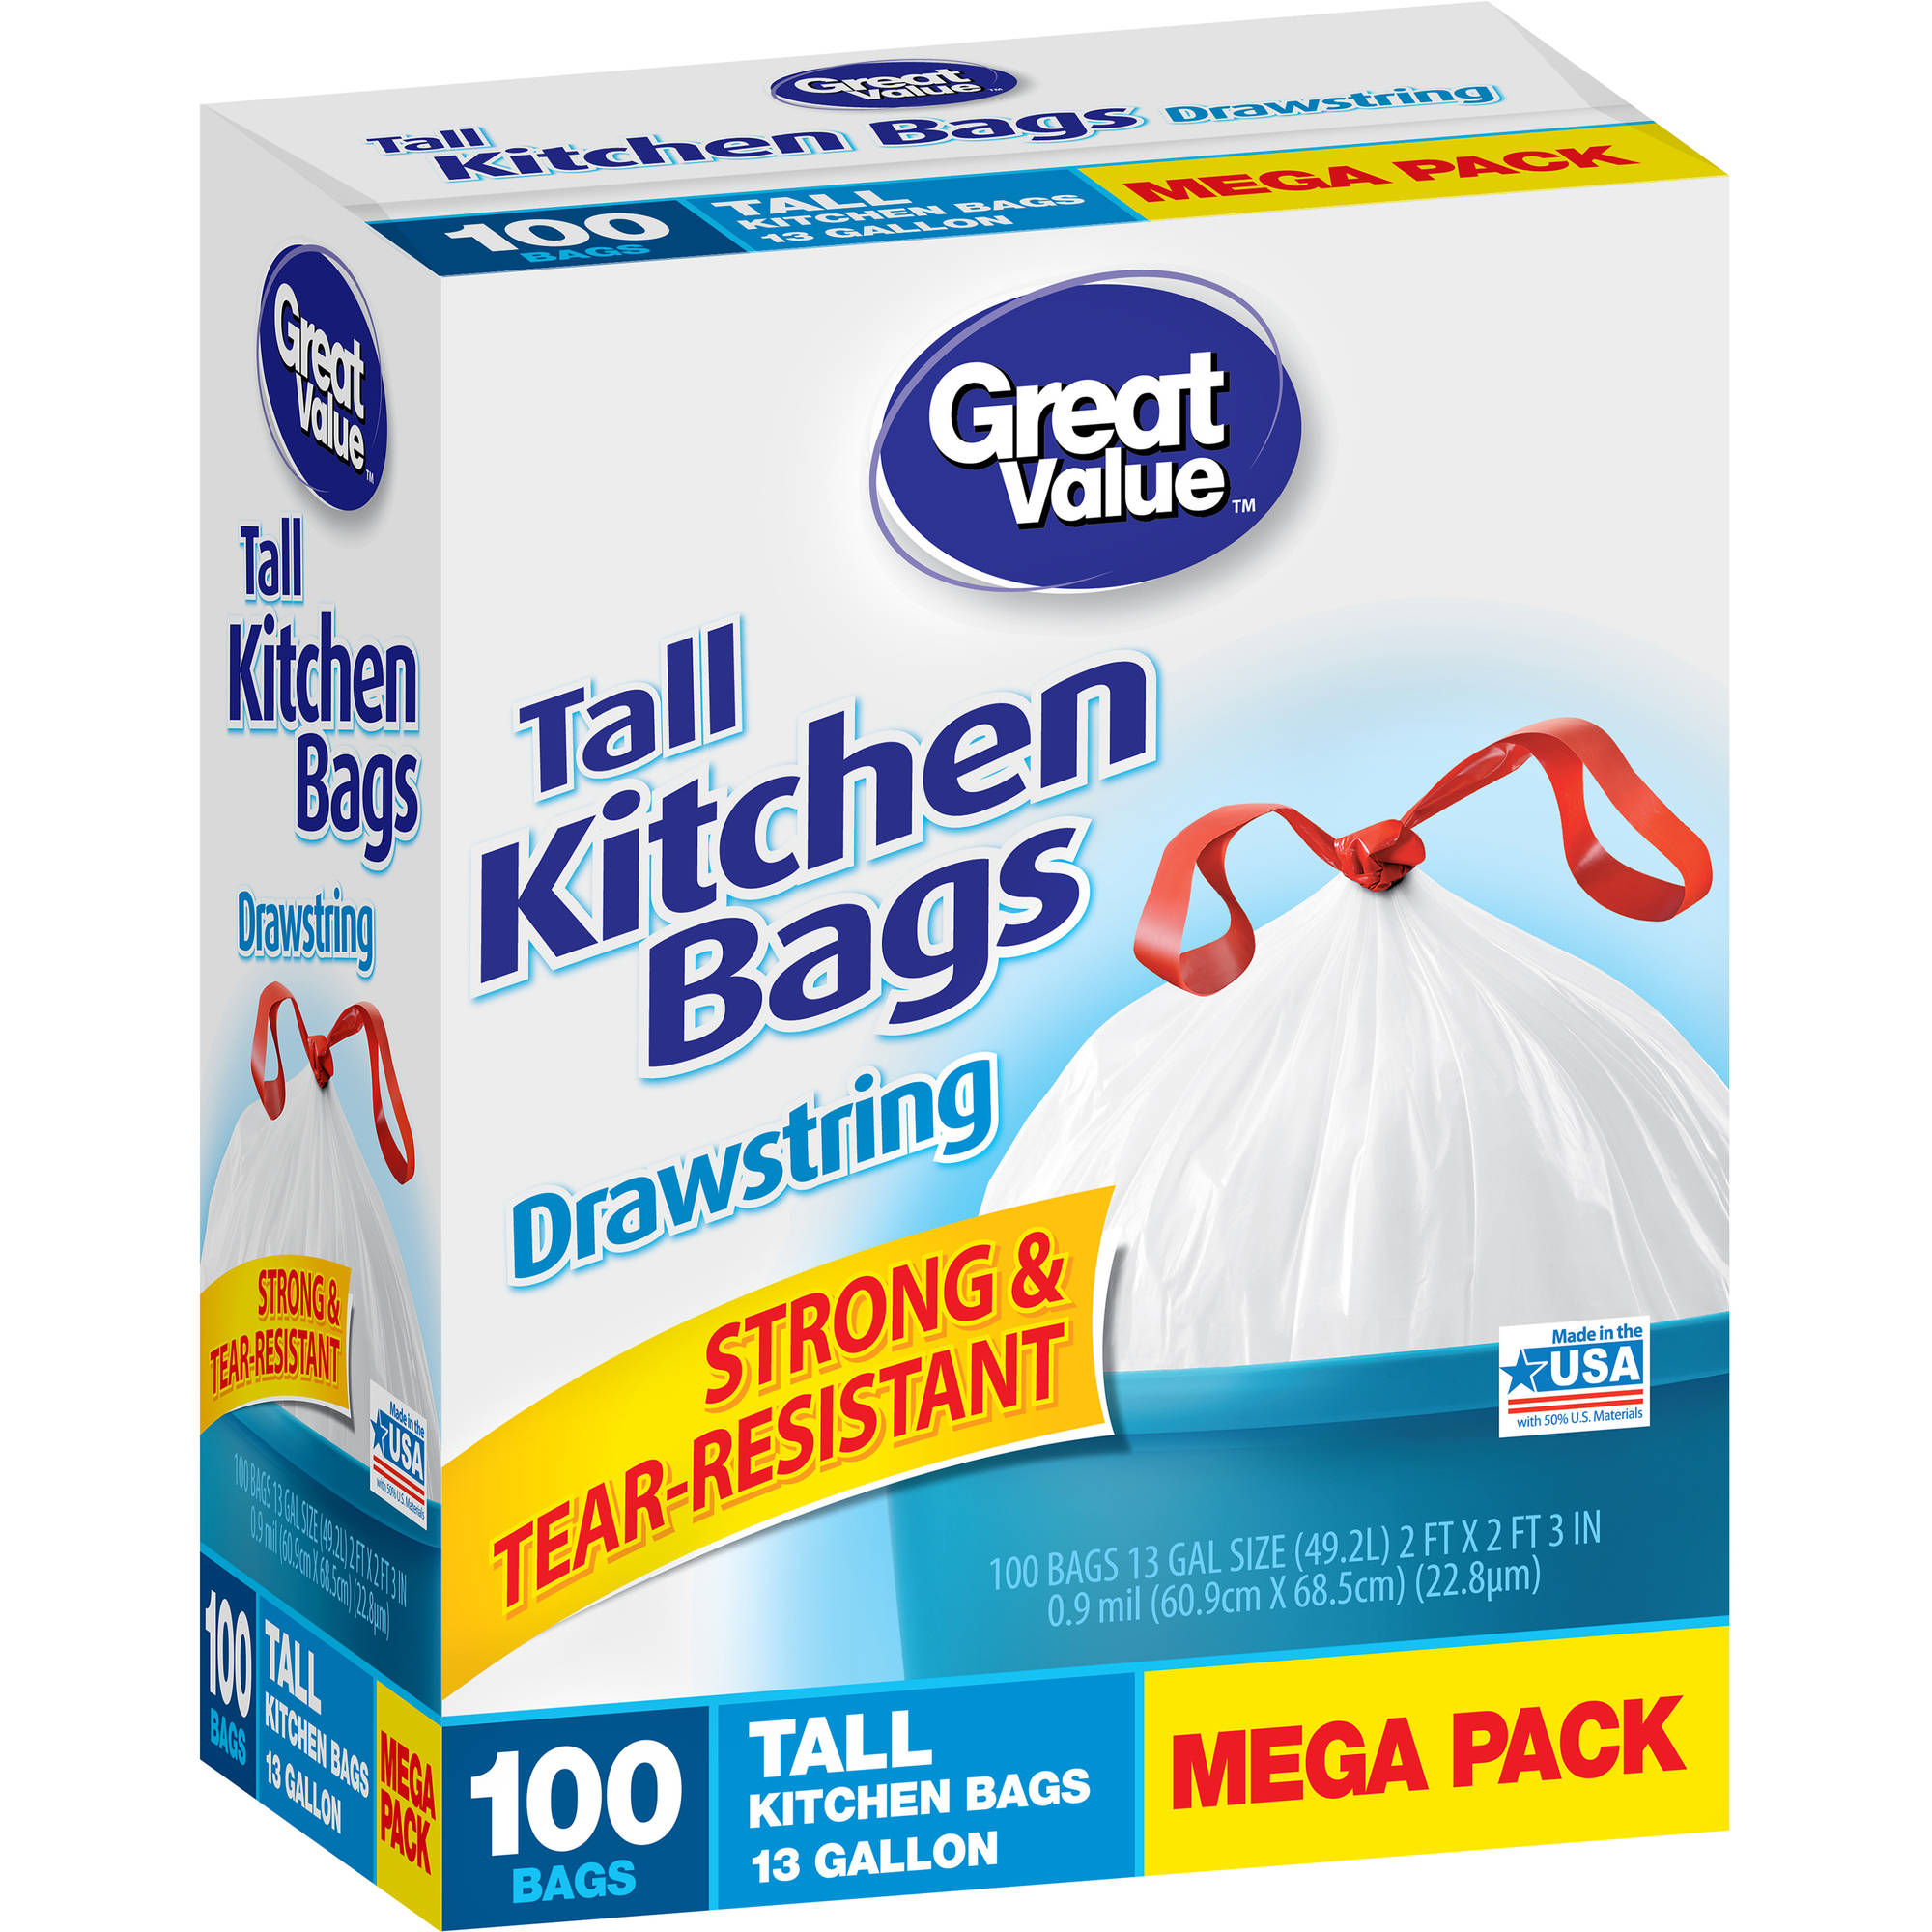 Great Value Tall Kitchen Bags, 13 gal, 100ct